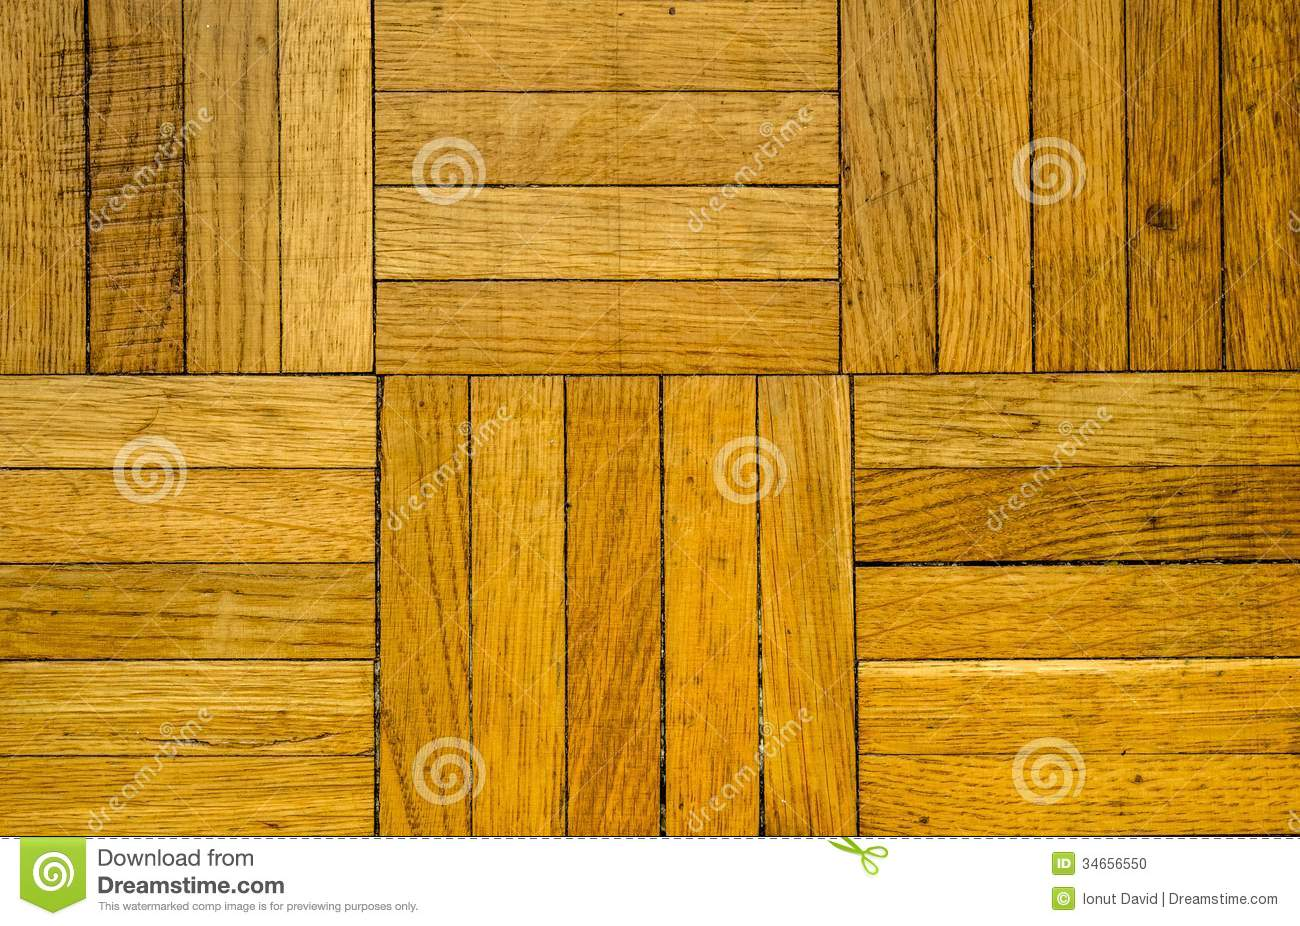 Wood floor pattern - Wood Floor Pattern Stock Photo - Image: 34656550